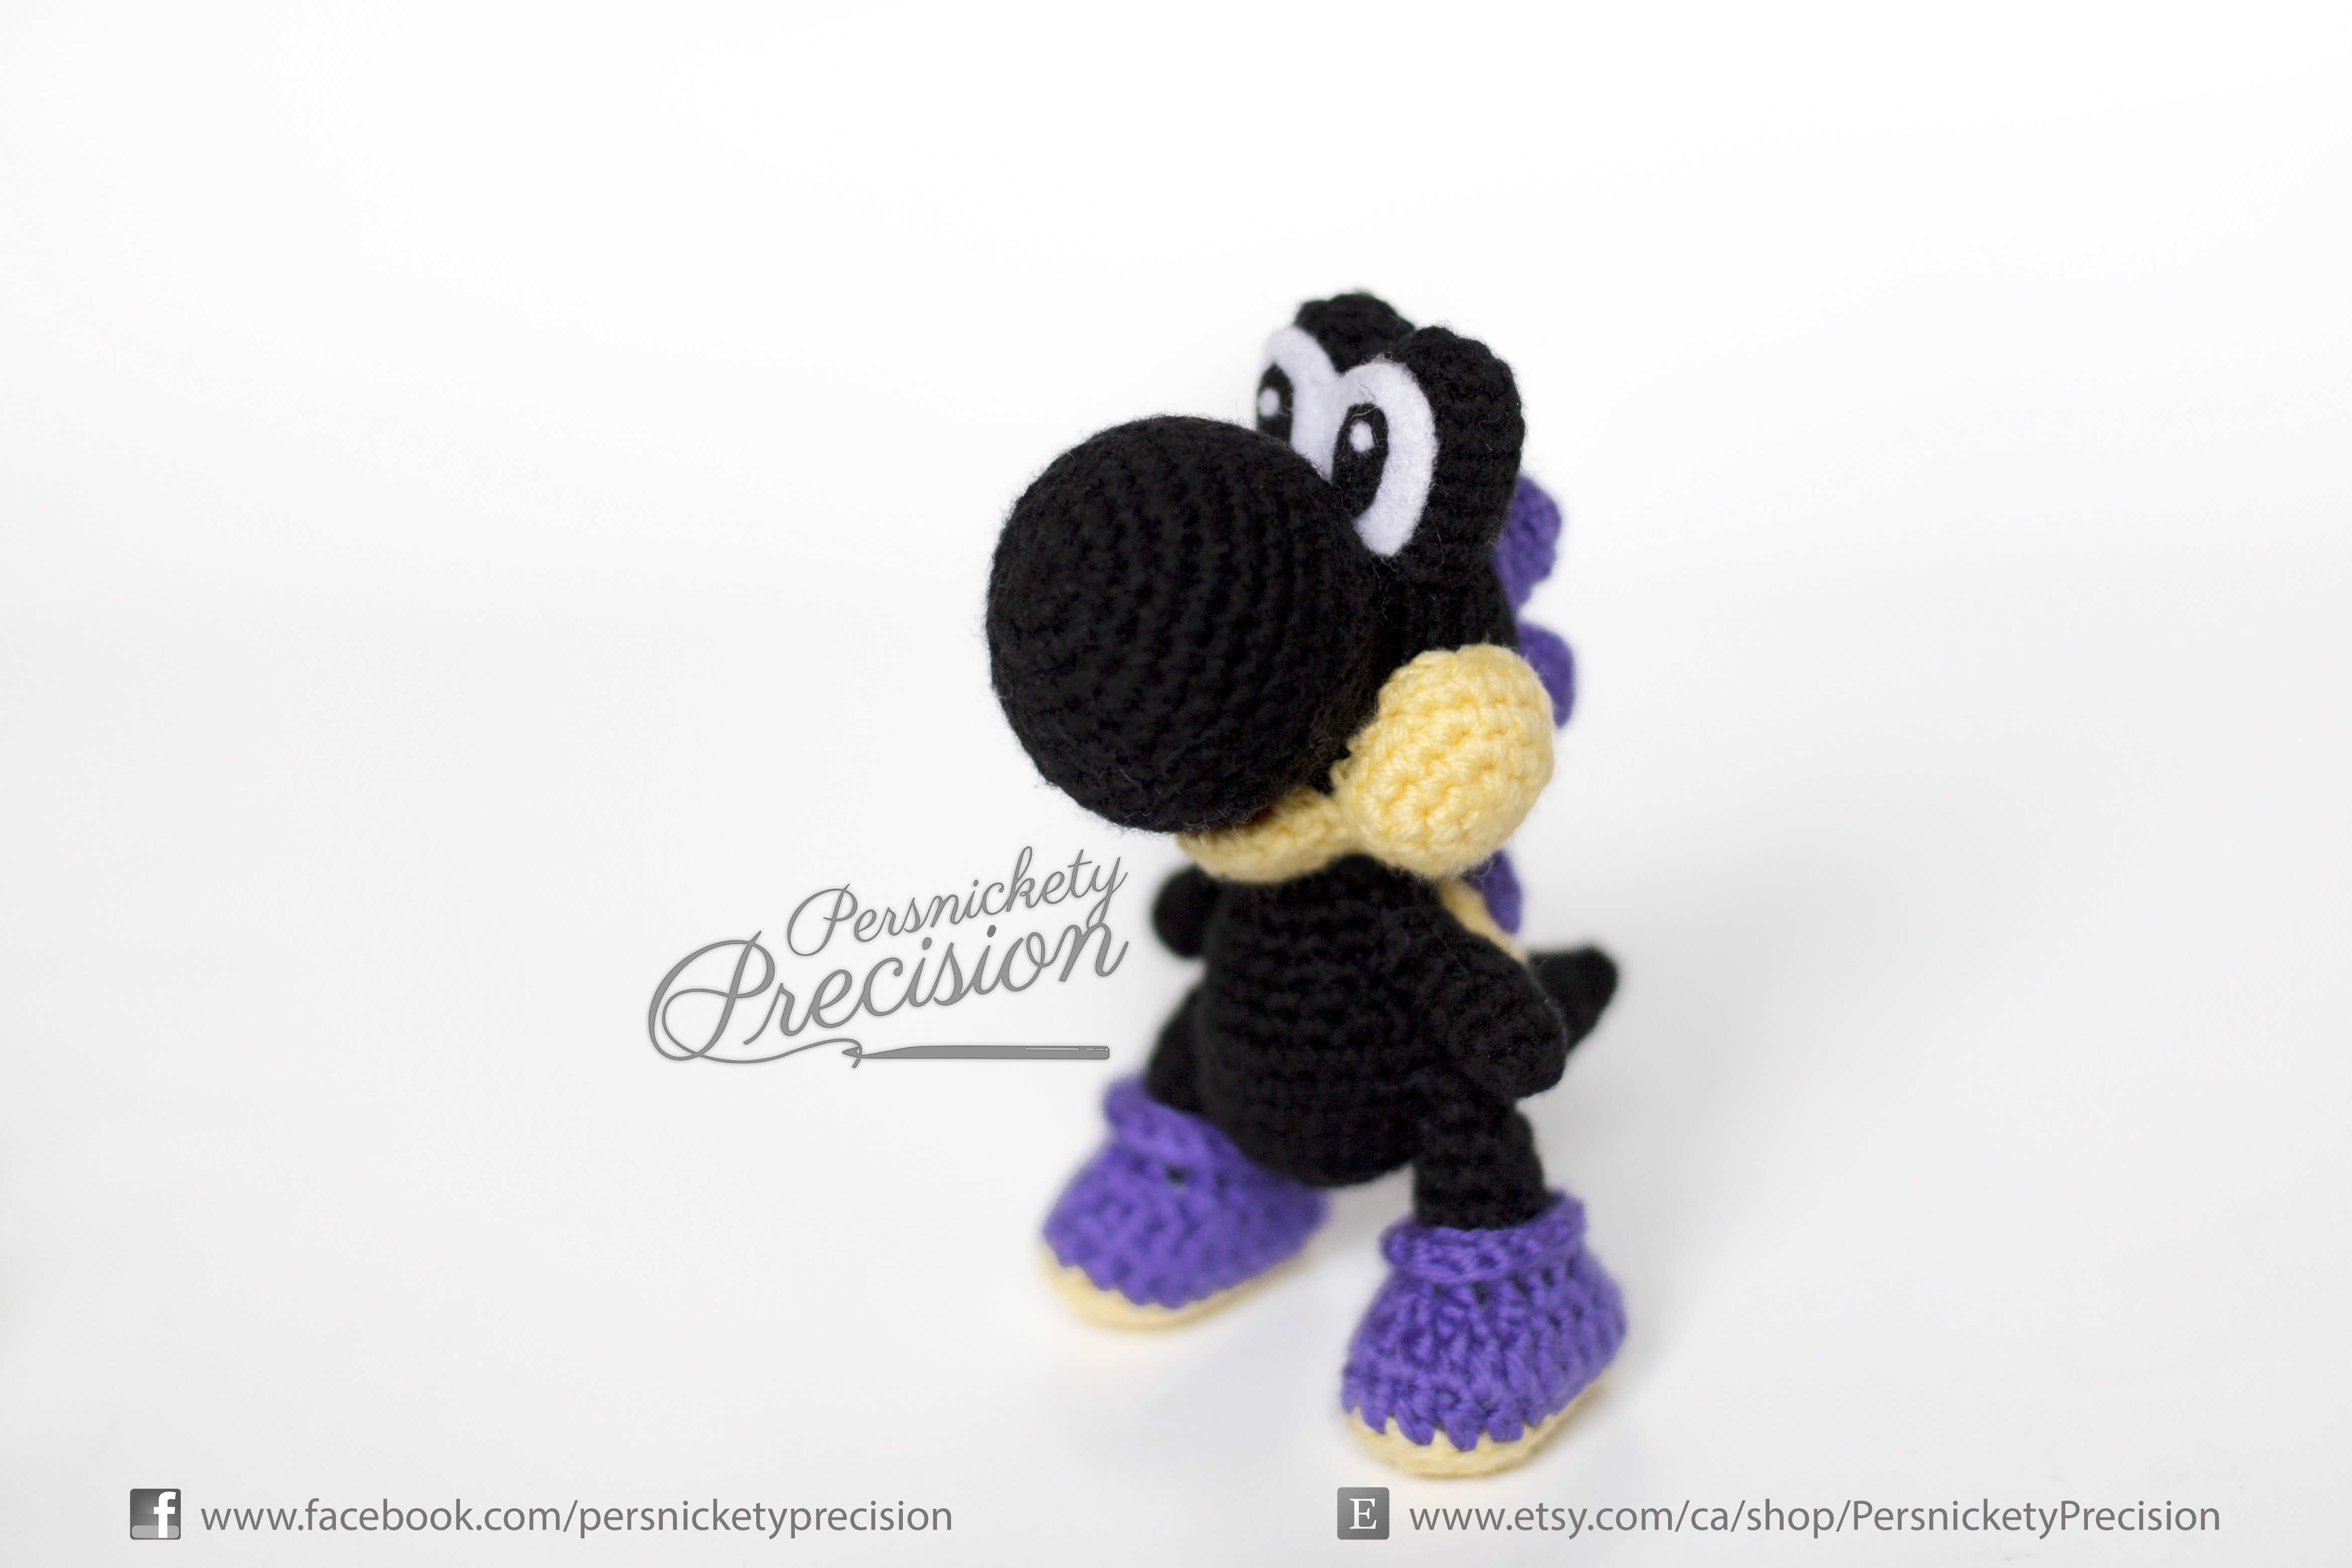 Crochet Nighttime Yoshi by Persnickety Precision on Etsy. Just in ...